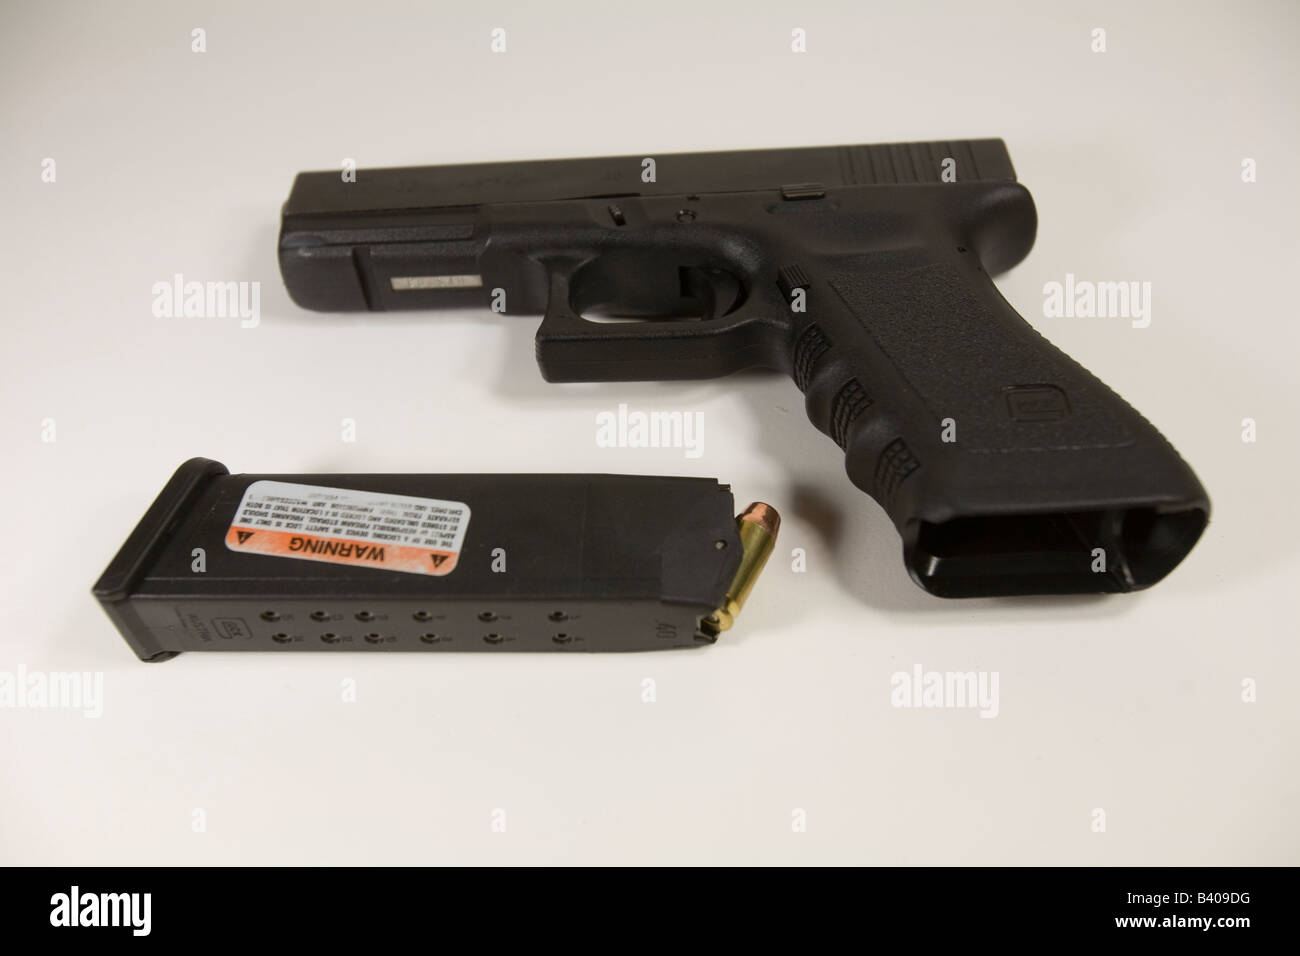 Glock Model 22 40 Caliber Pistol With The 15 Round Magazine Removed